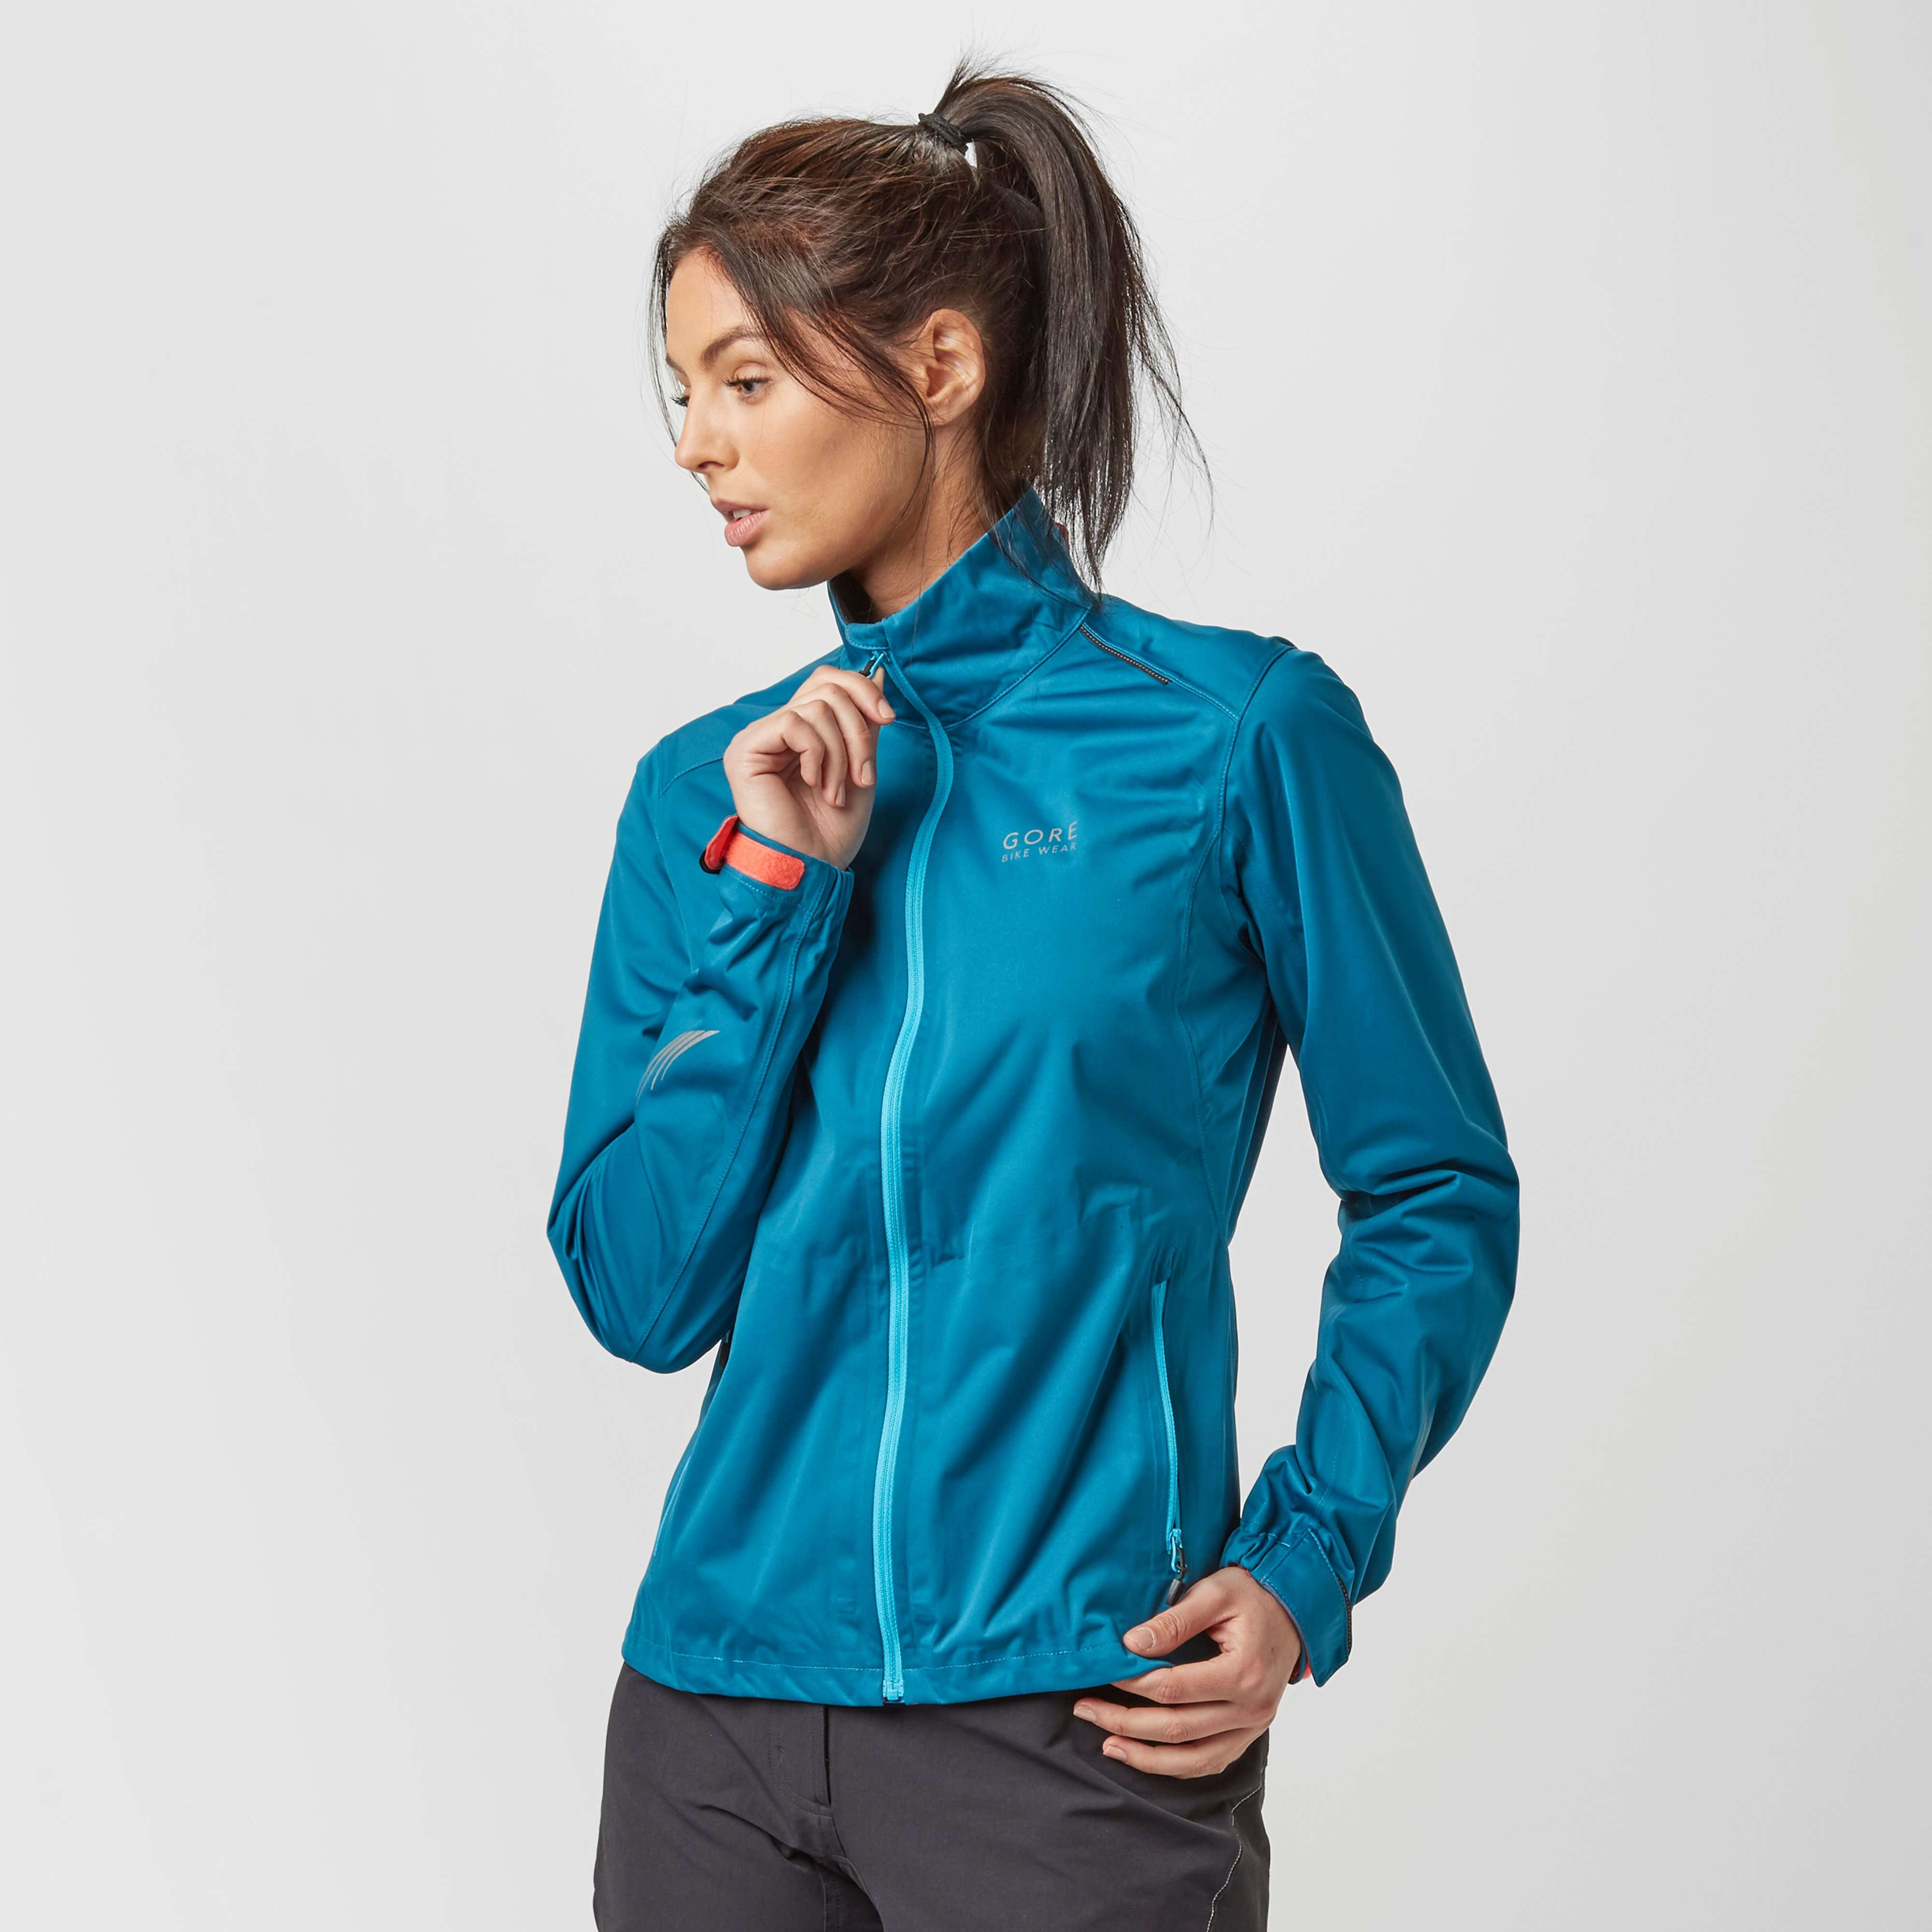 GORE Women's Element Lady GORE-TEX® Jacket